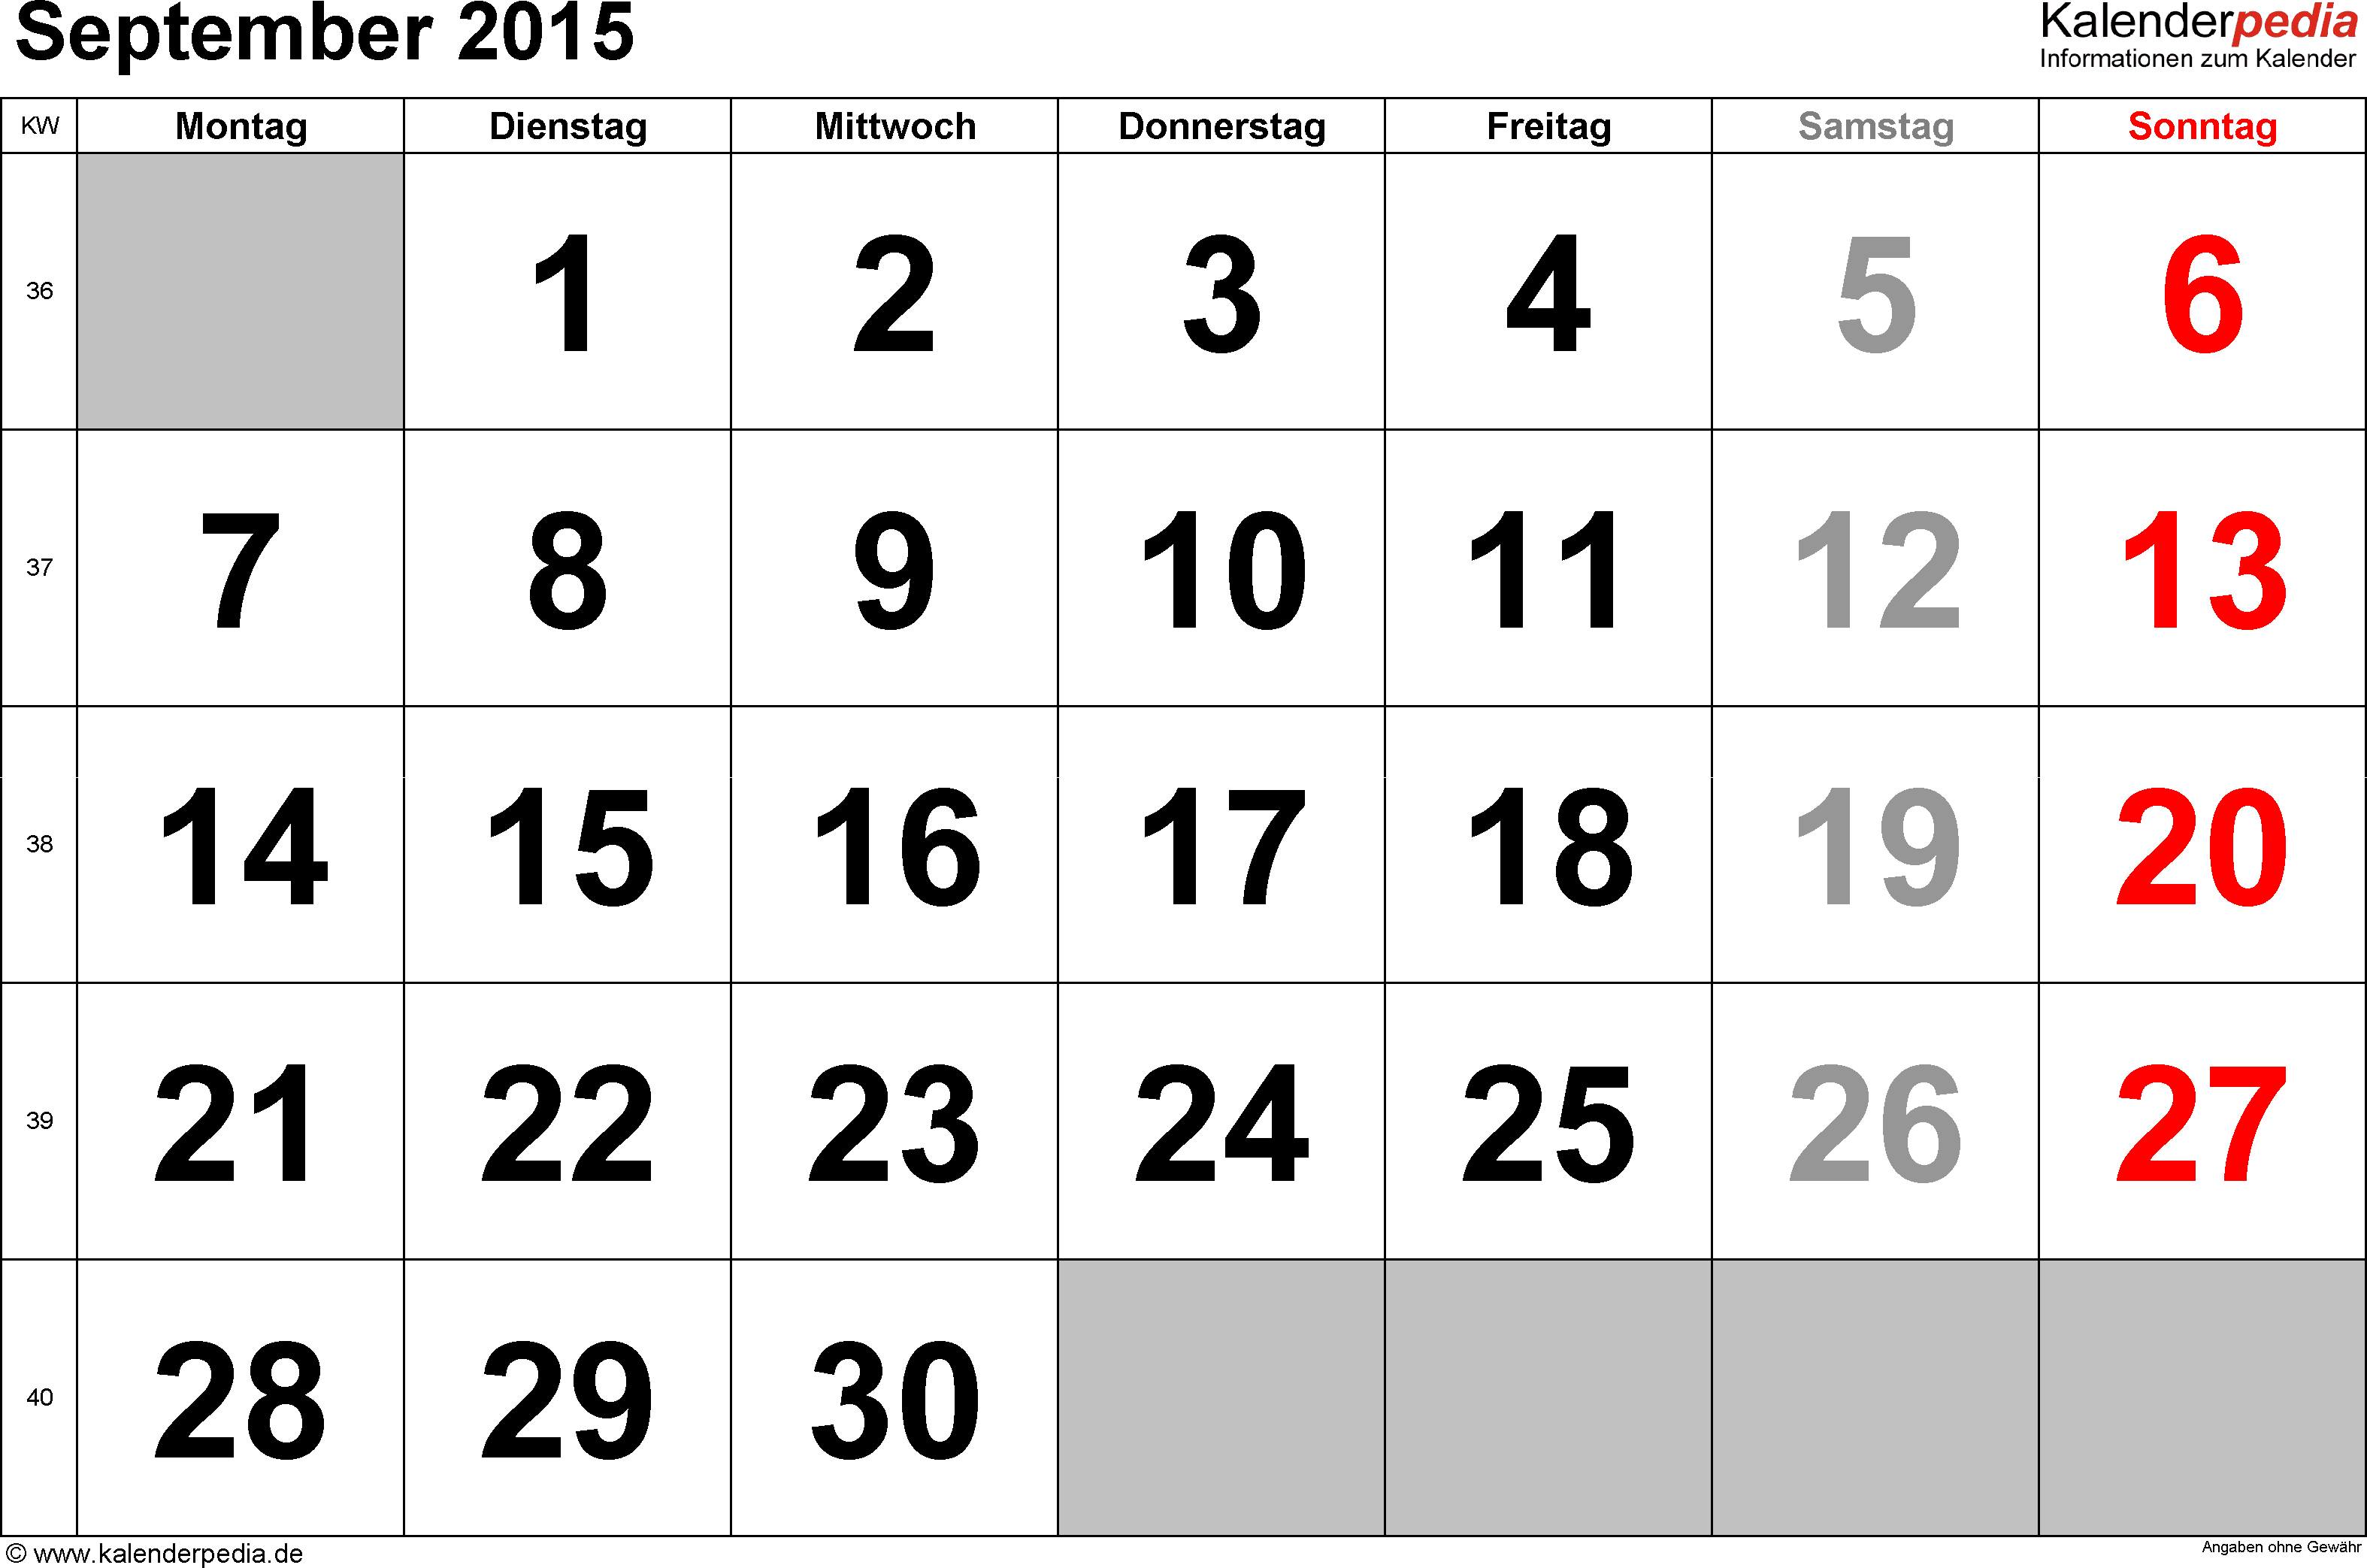 kalender september 2015 als word vorlagen